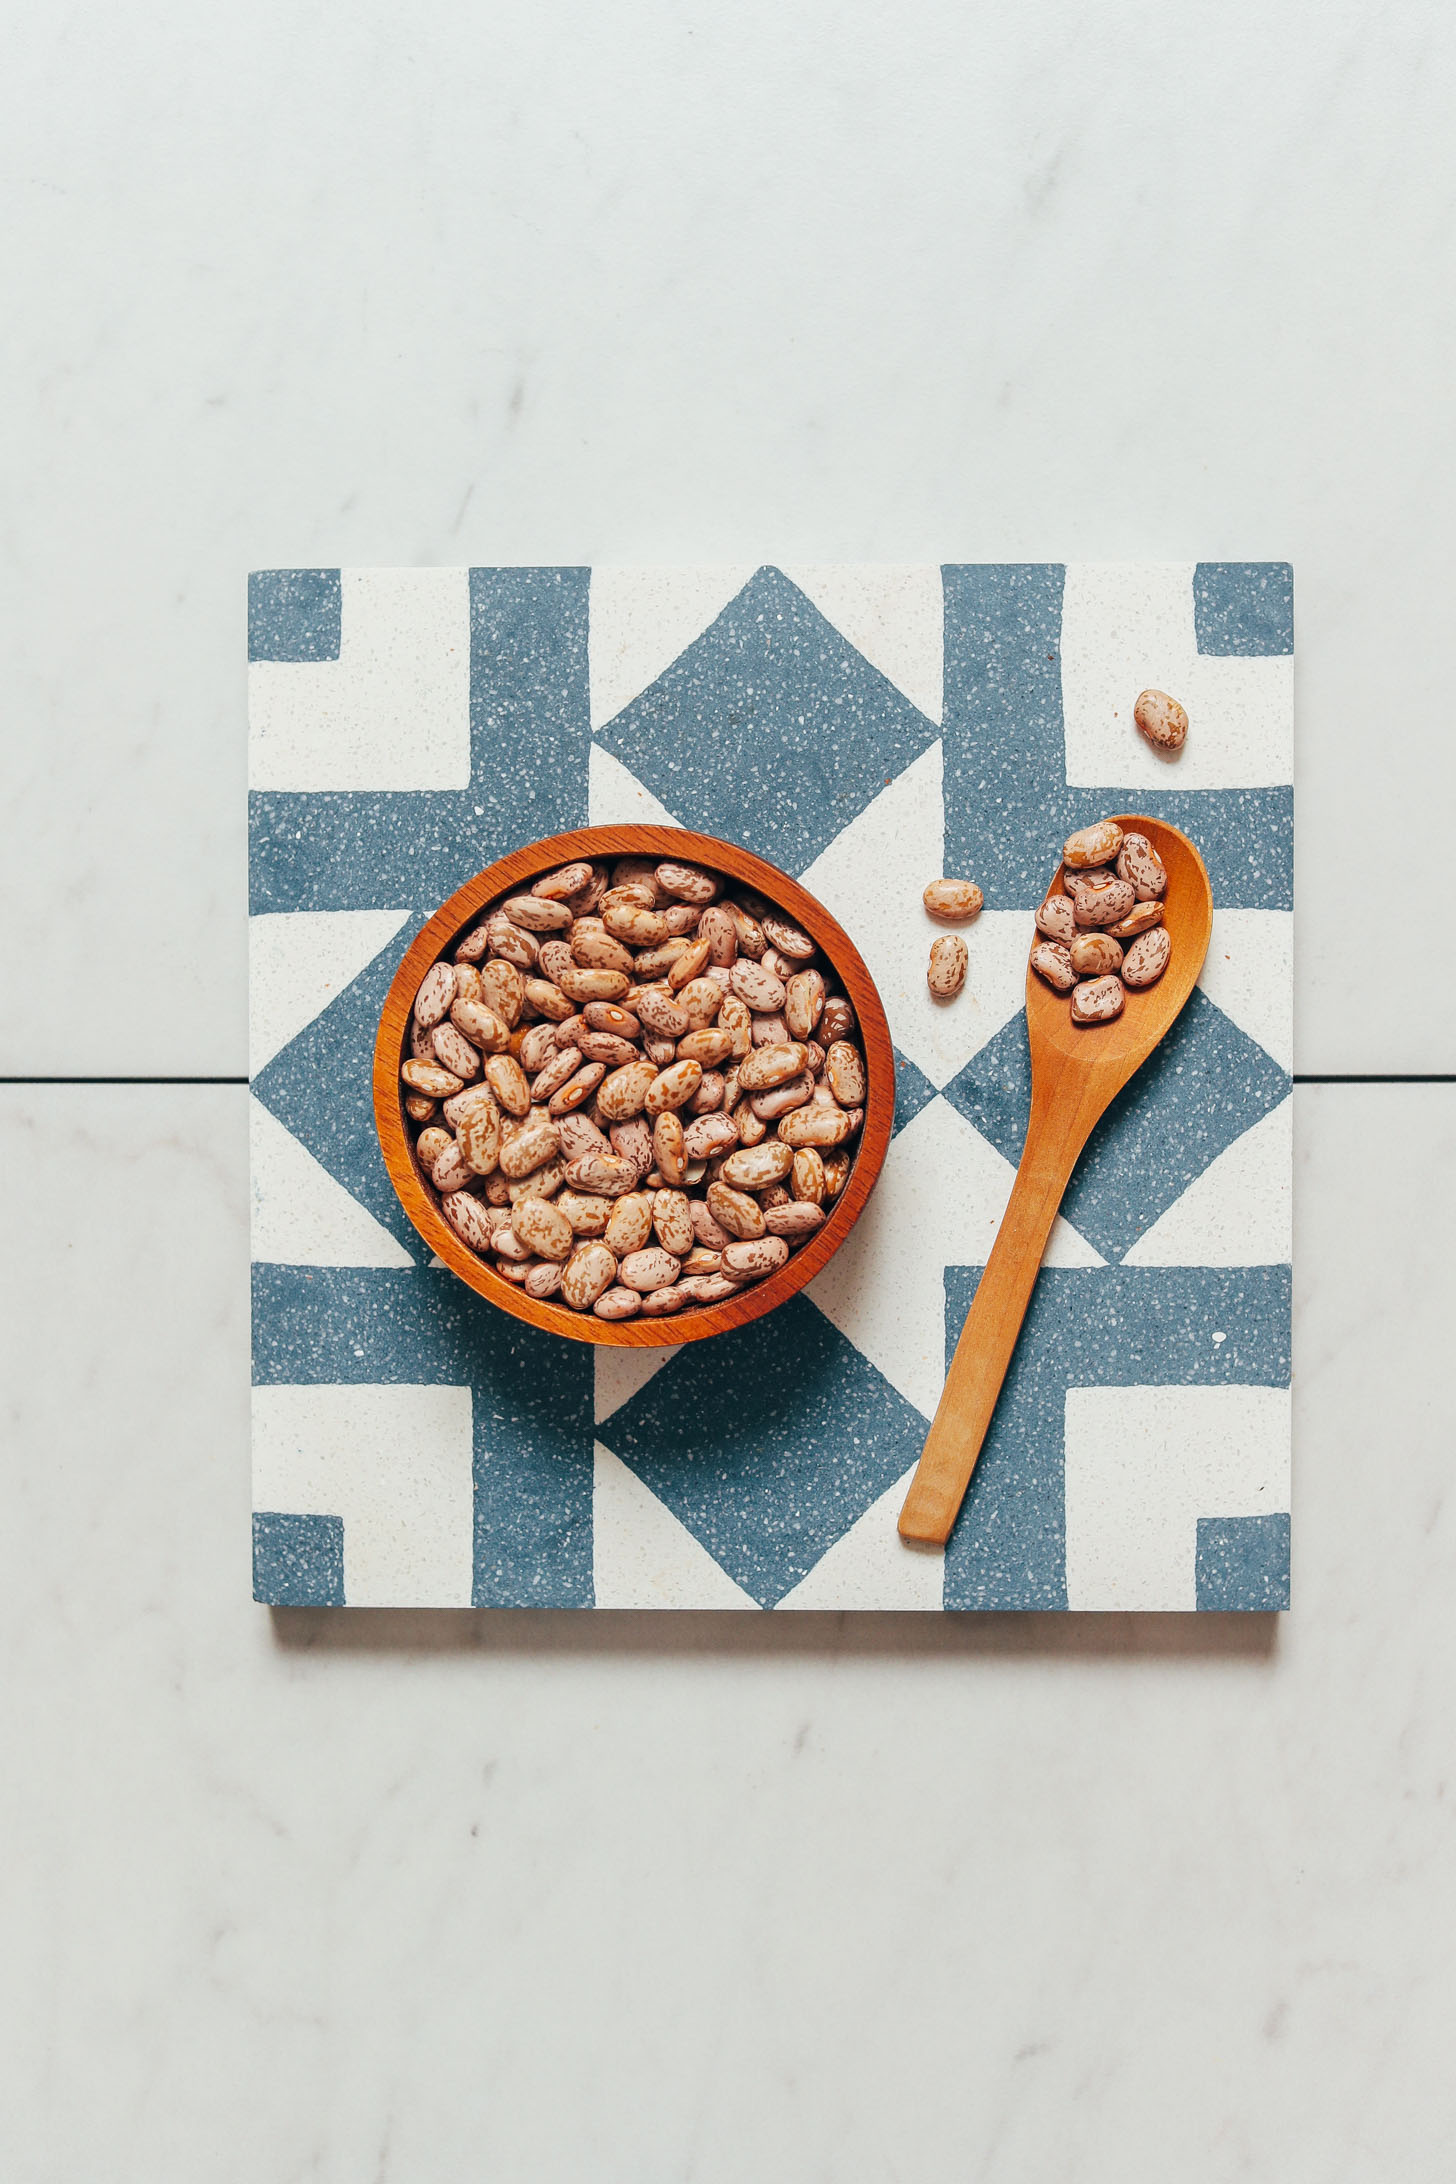 Spoon and bowl of Instant Pot pinto beans